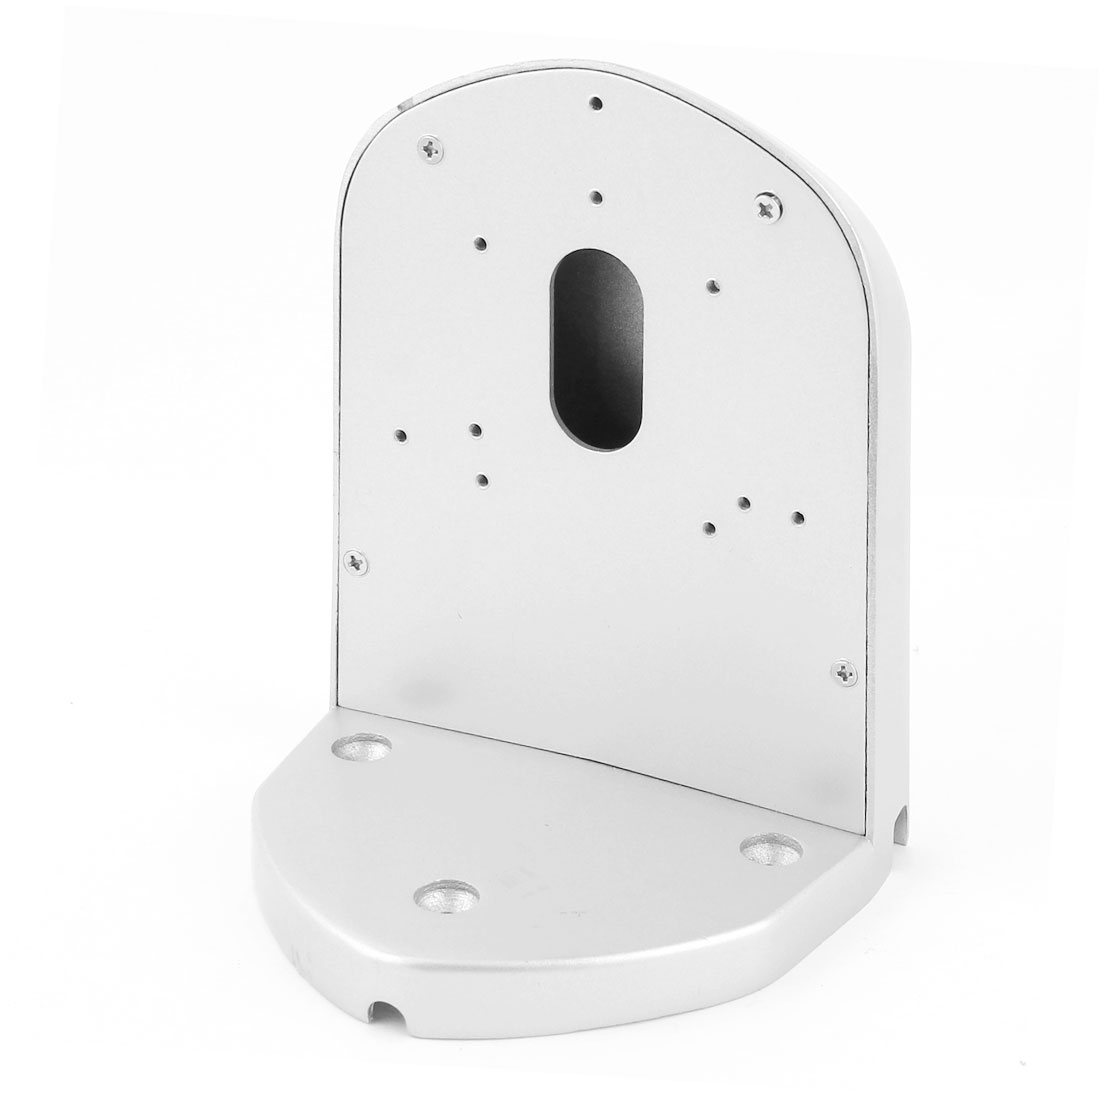 "6"" High L Shaped Wall Mounting Bracket for CCTV Security Dome Camera"